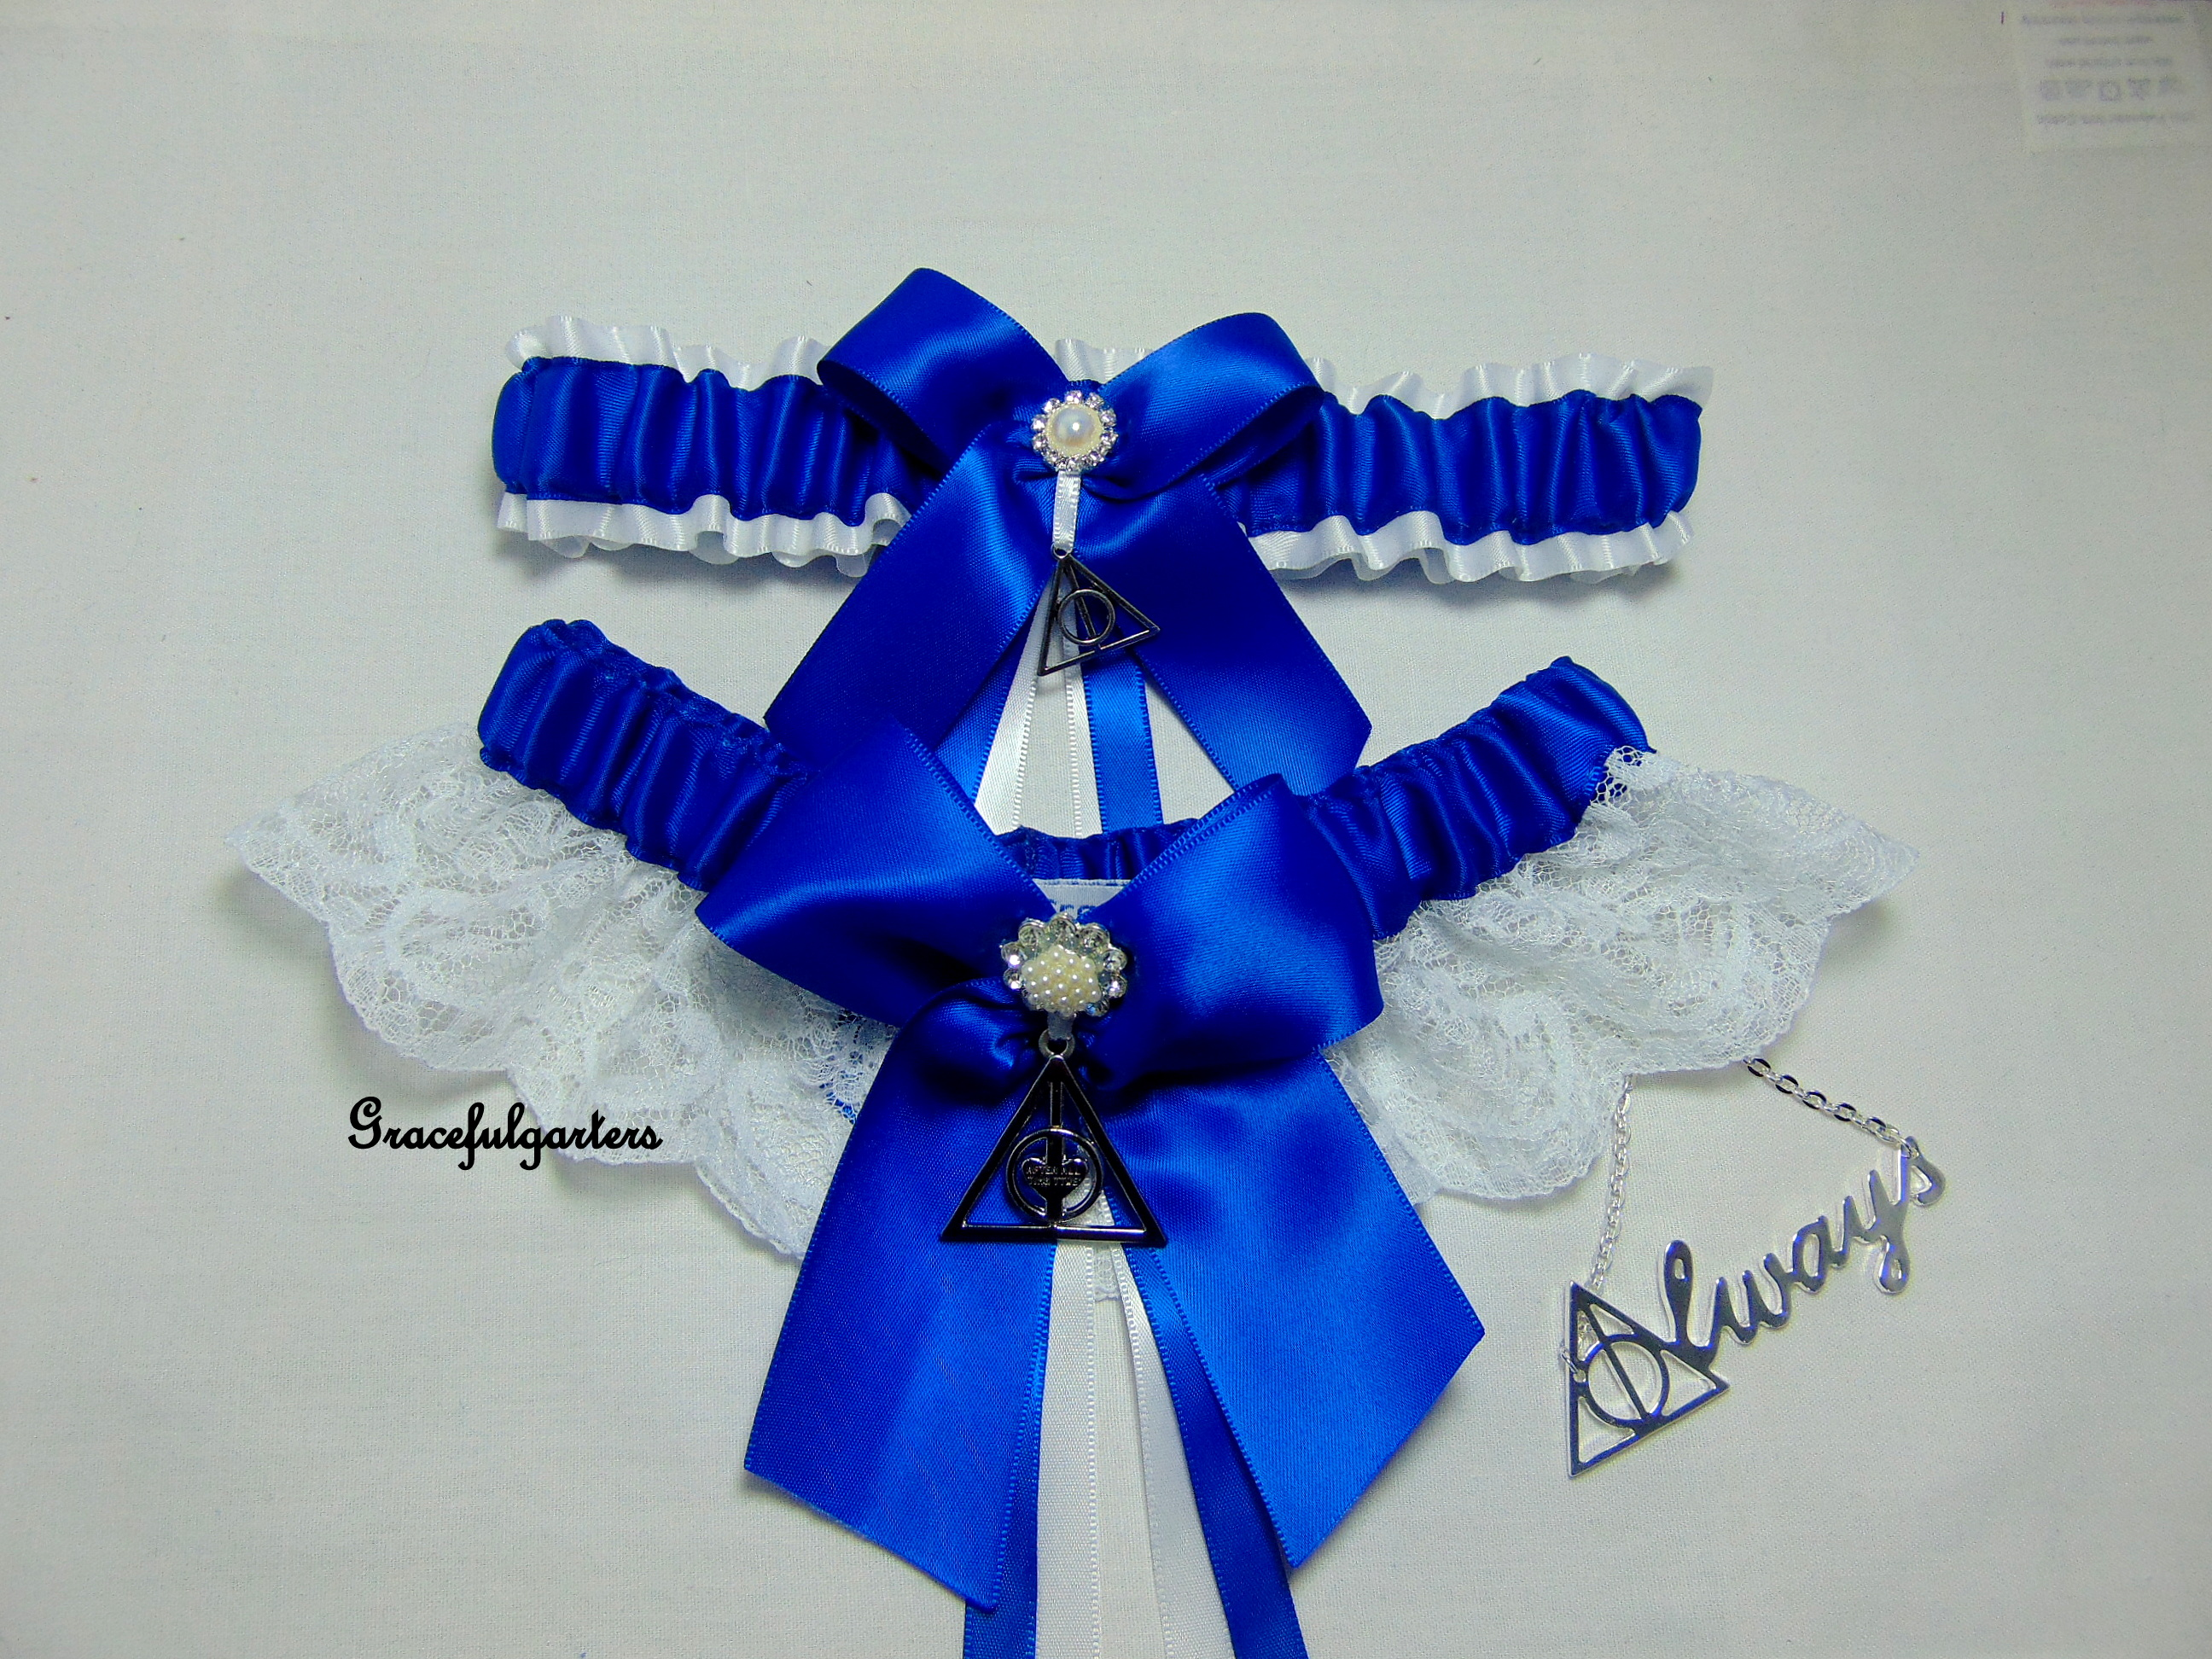 fe72f3912 Harry Potter Deathly Hallows Always After All This Time Lace Wedding Garter  Set. - GracefulGarters